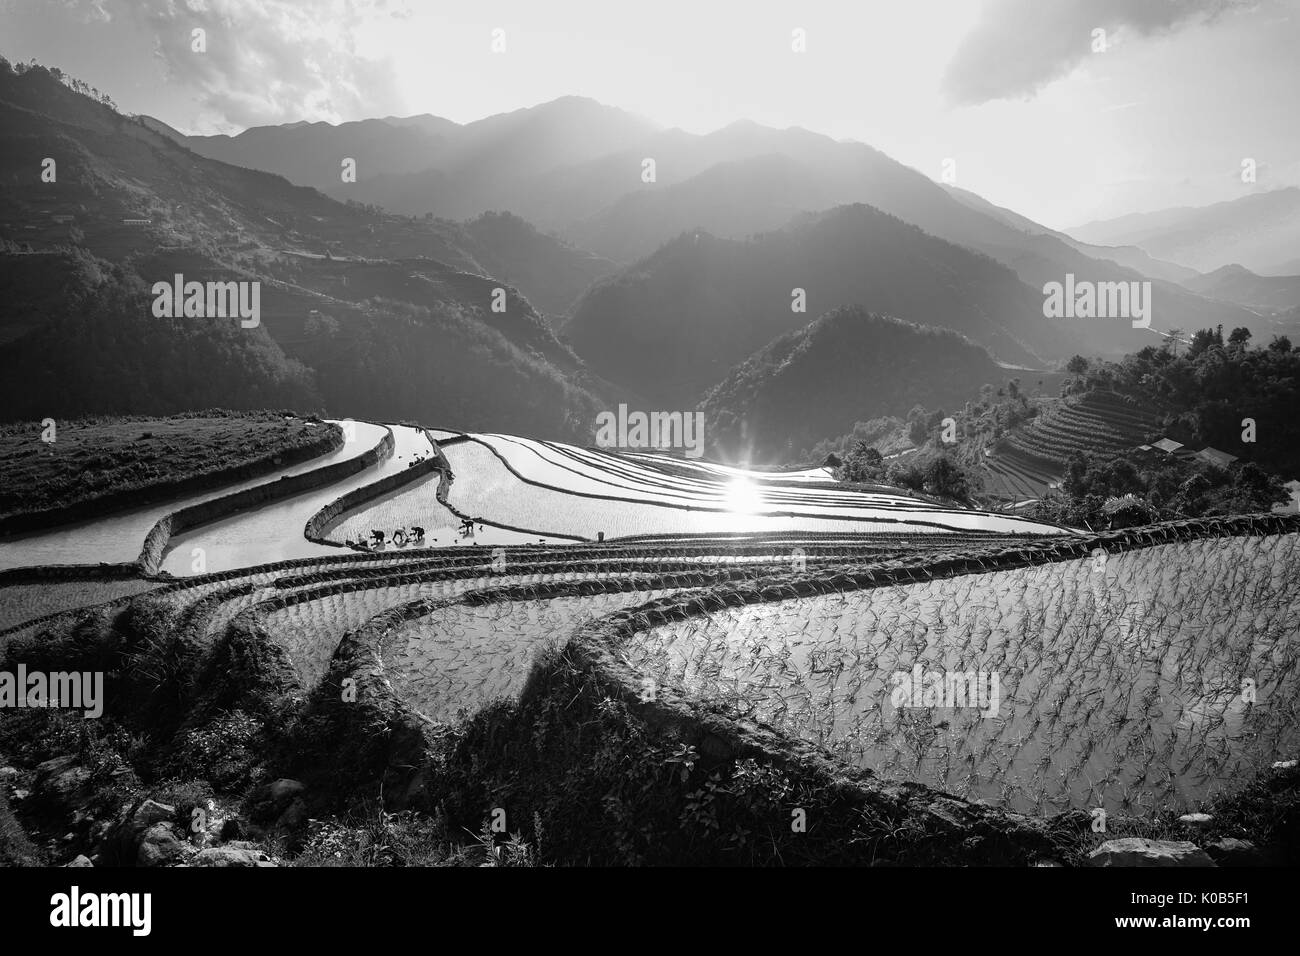 Terraced rice field at sunny day in Lao Cai, Vietnam. Lao Cai is a province of the mountainous northwest region of Vietnam, sharing 203 km of border w - Stock Image